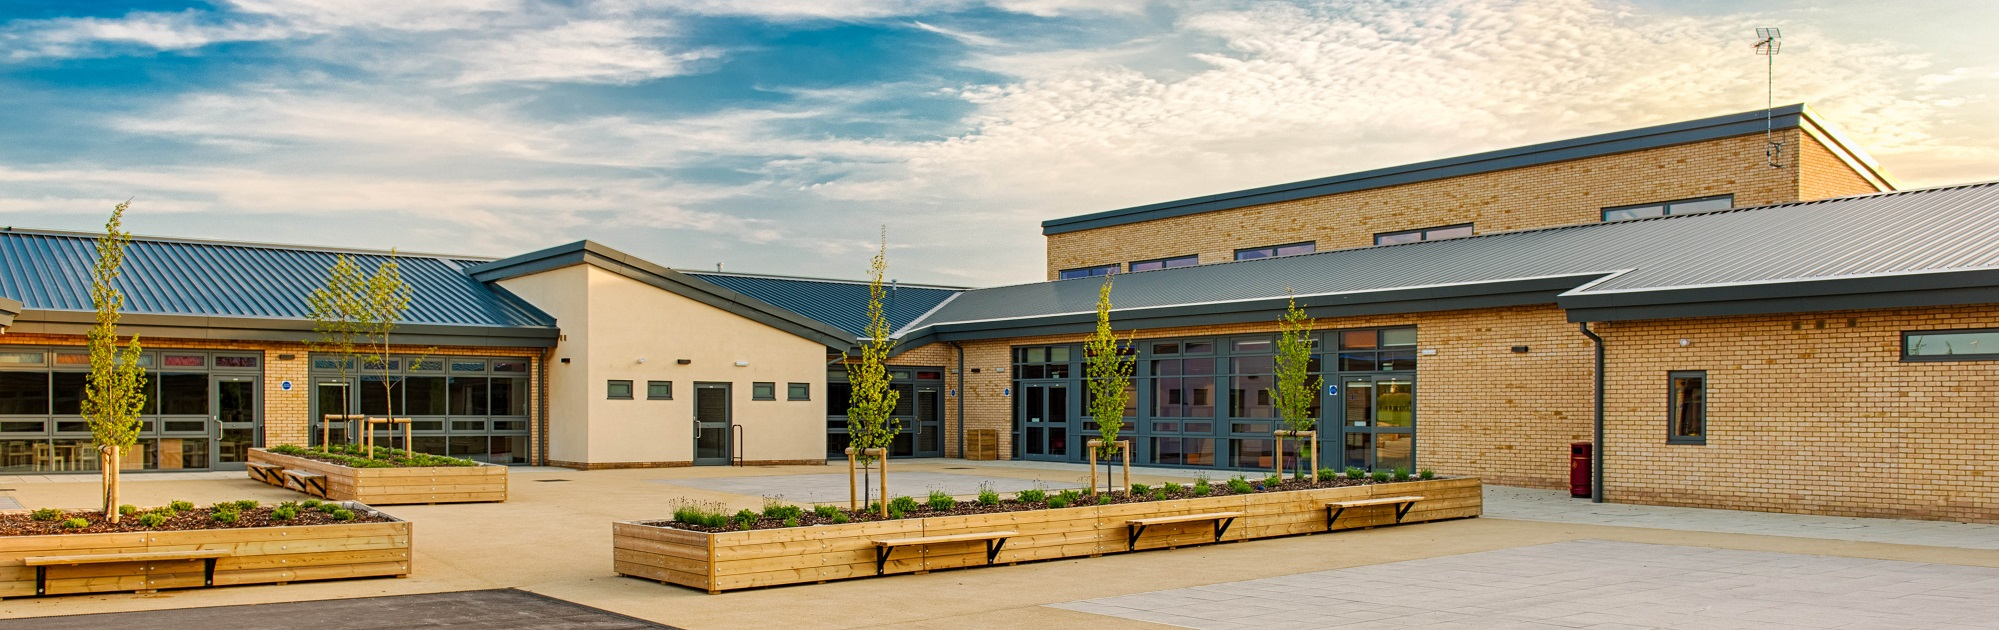 A.C. Bacon Engineering - Isle of Ely Primary School